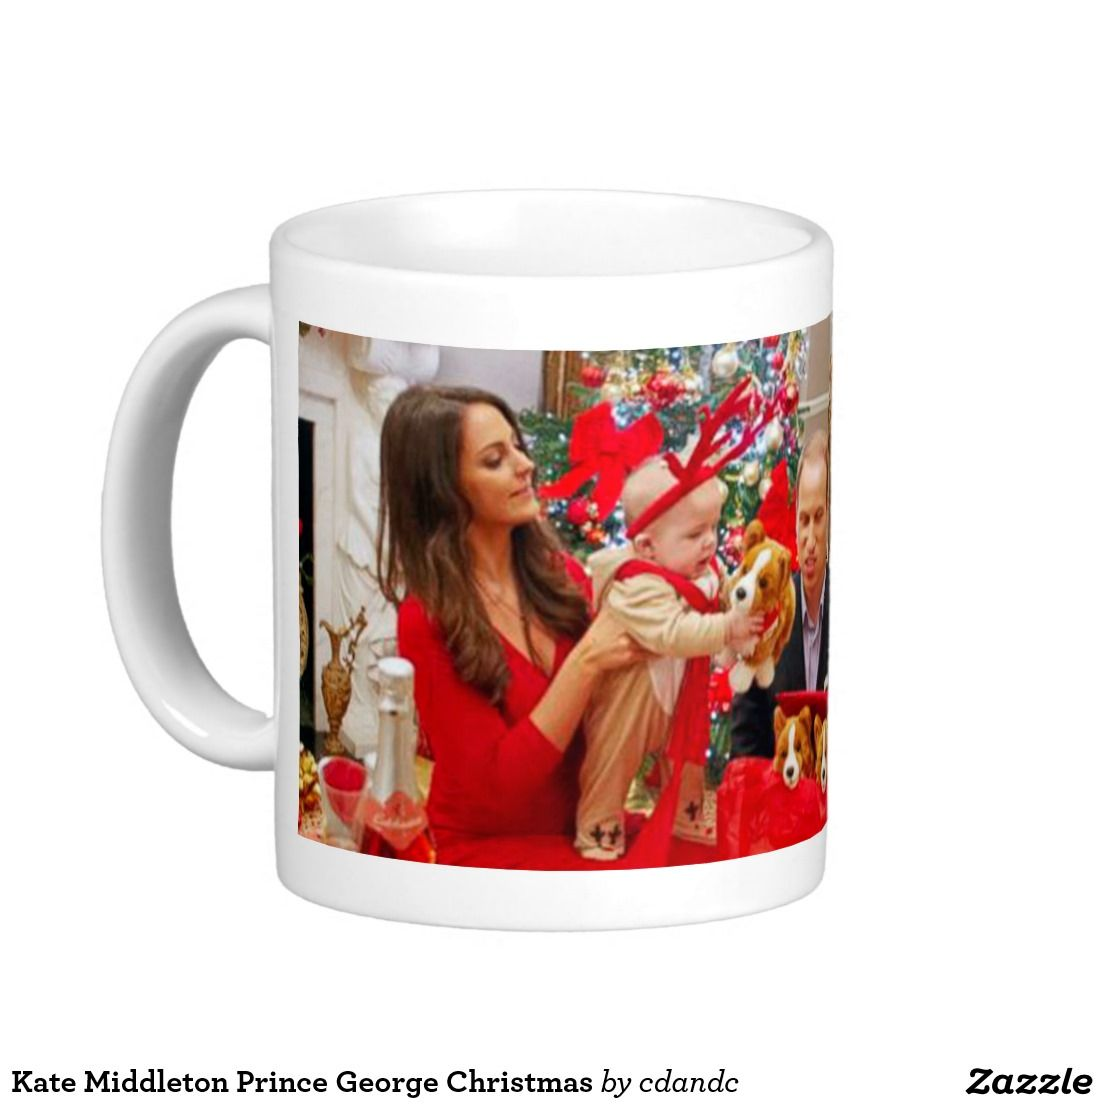 Kate Middleton Prince George Christmas Basic White Mug   -  Visit my Zazzle Store for more Great Gift Ideas - http://www.zazzle.com/cdandc - #royalfamily #british #gifts #will #kate #mug #souvenir